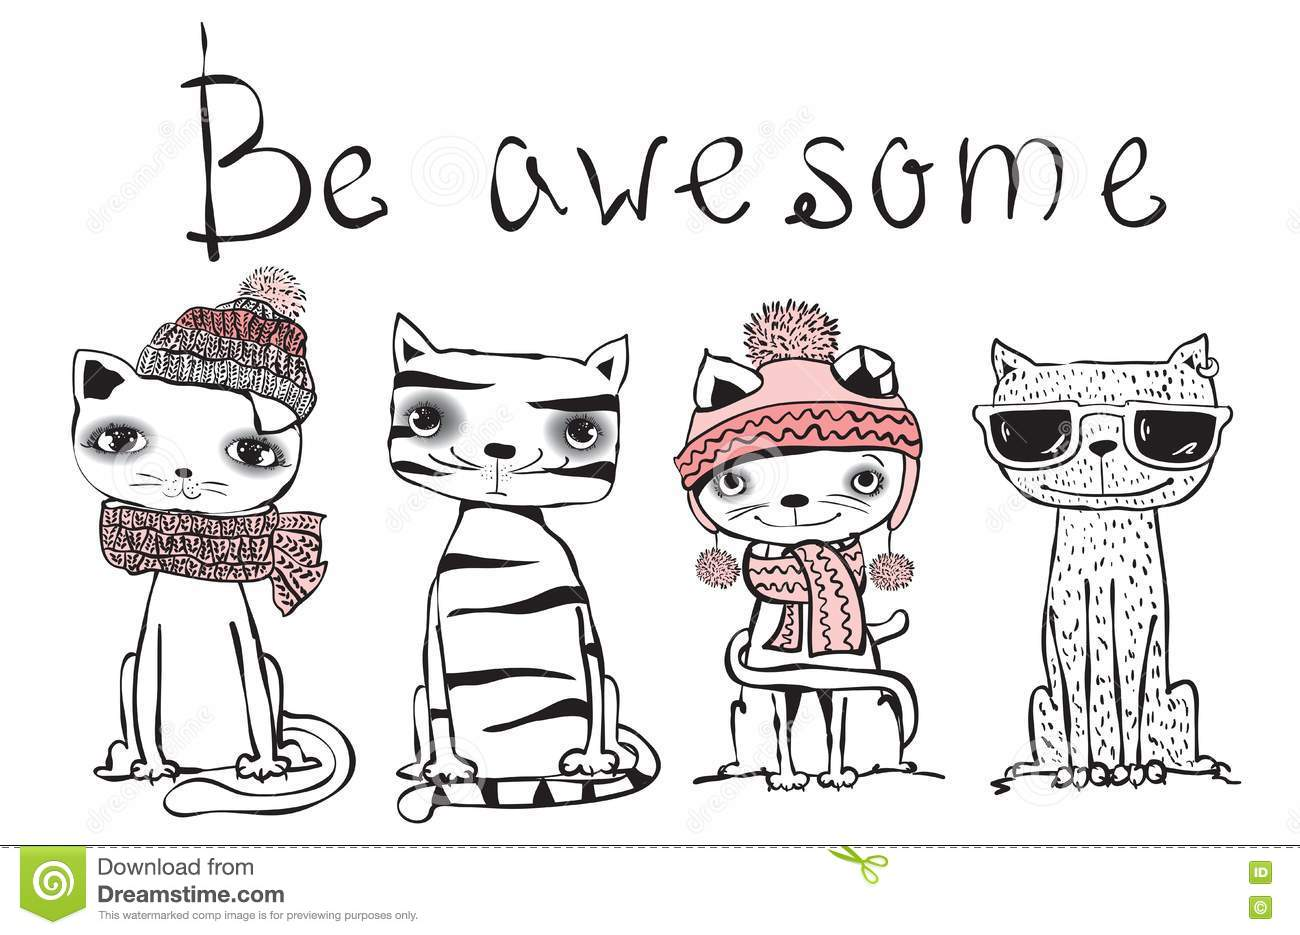 Be awesome cat